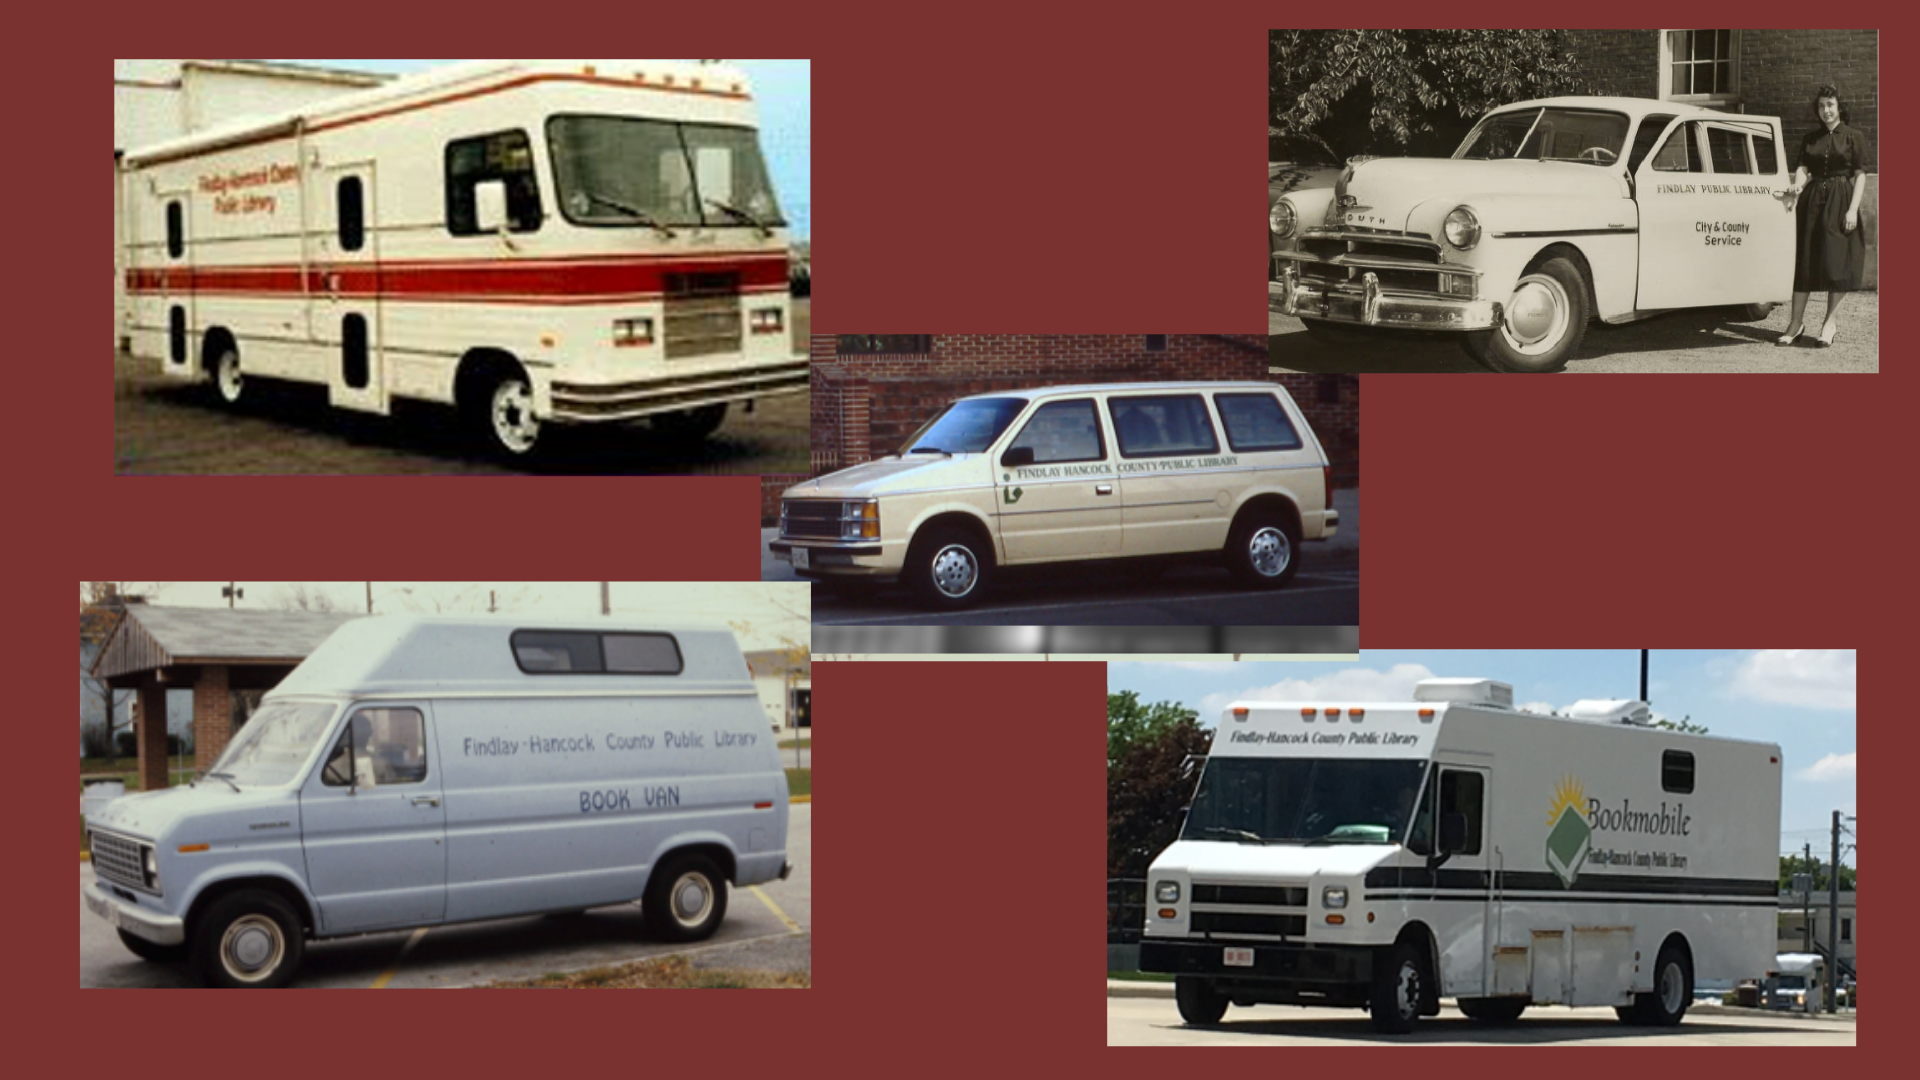 photo of different bookmobiles